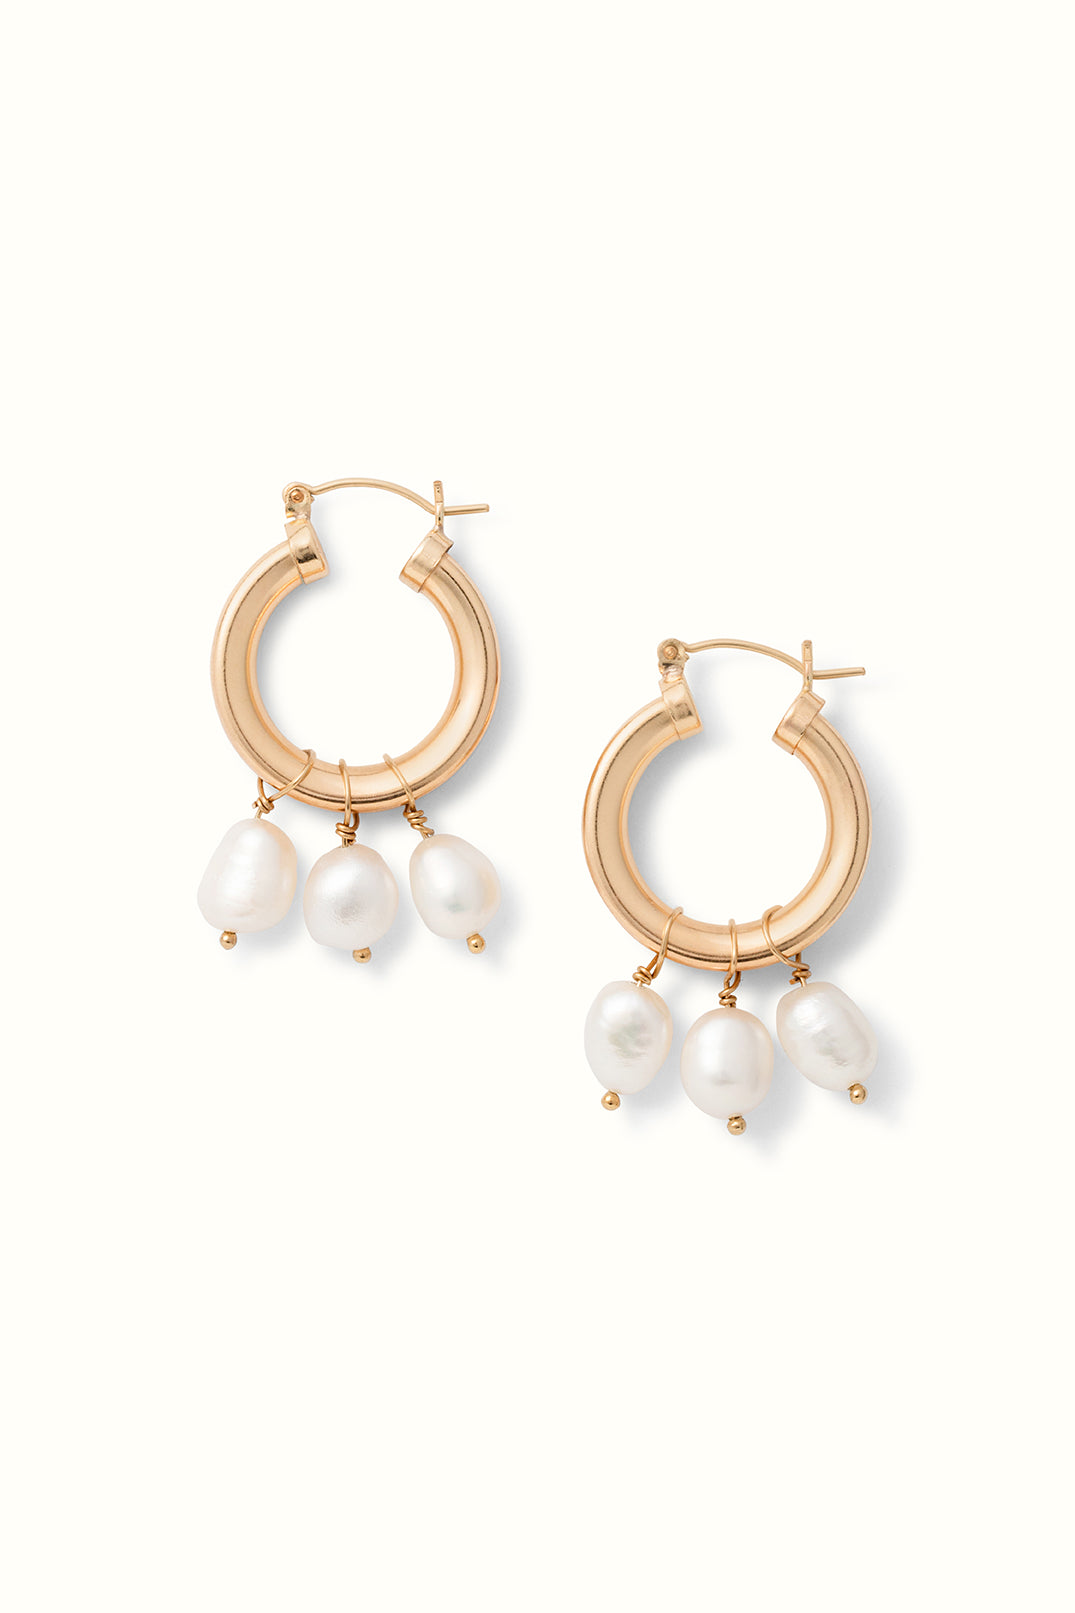 two chunky gold filled hoops with both 3 pearl drops lying on a white surface